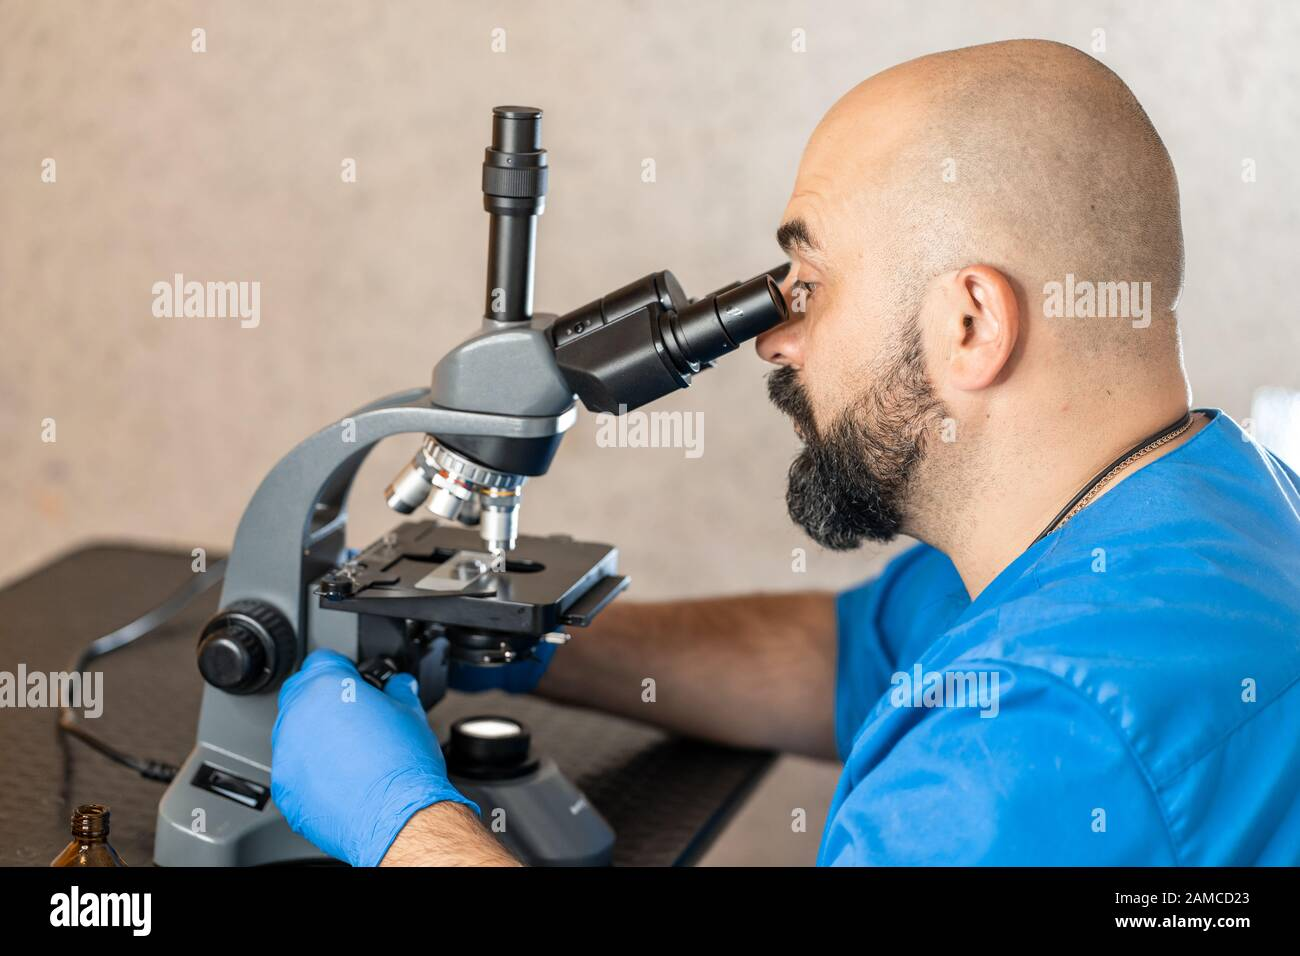 Male laboratory assistant examining biomaterial samples in a microscope. Stock Photo